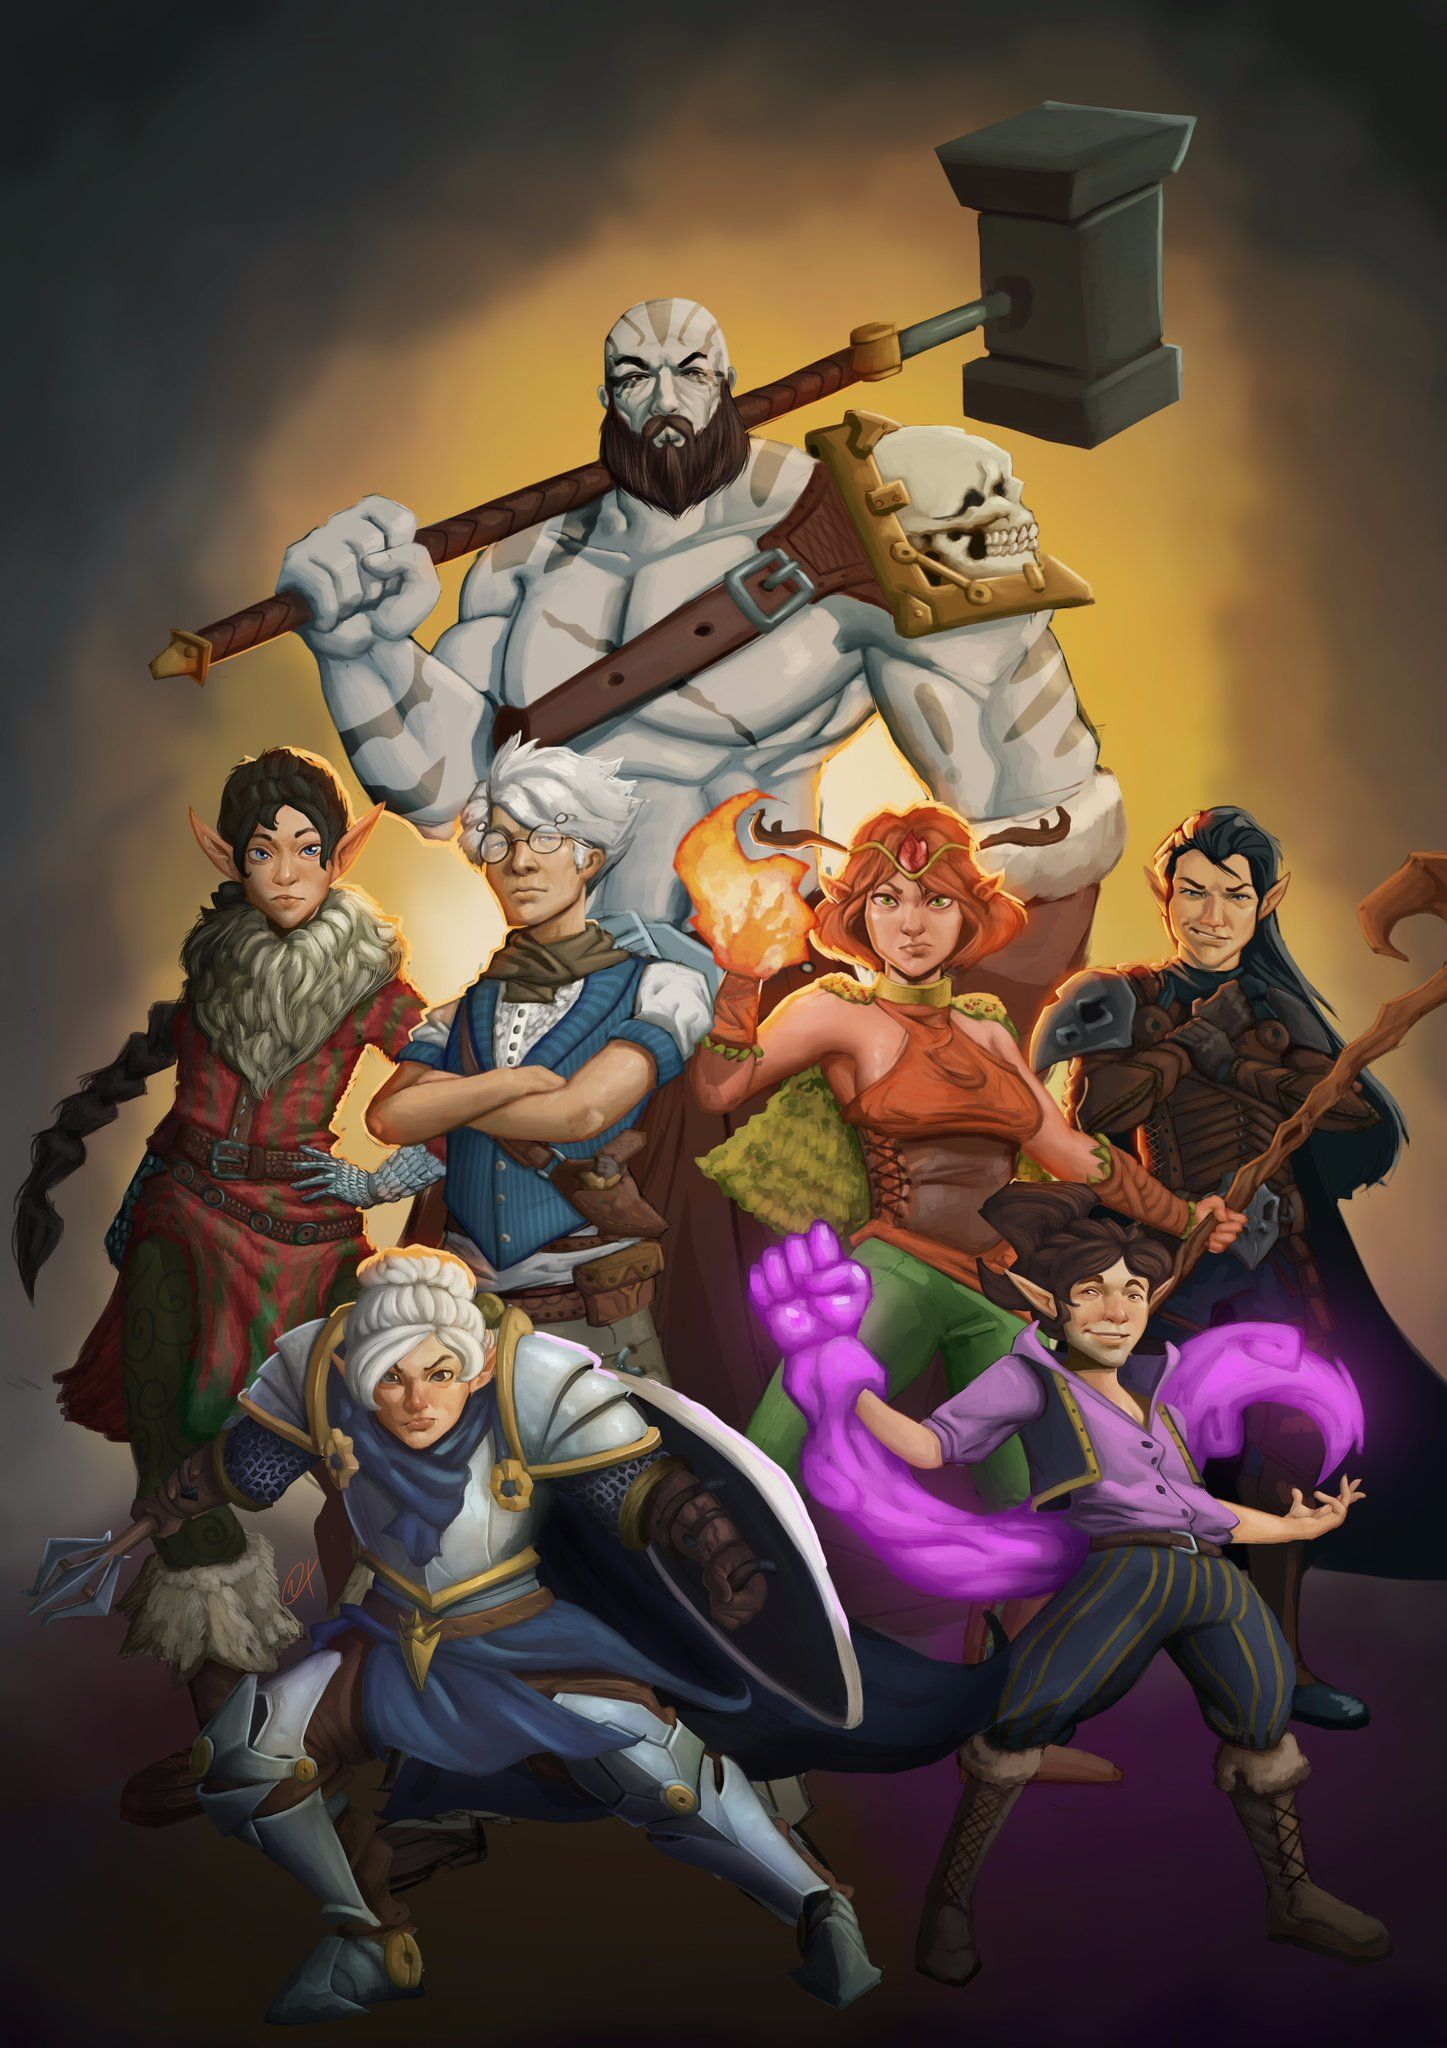 Pin On Critical Role Vox machina origins returns in this stunning edition! pin on critical role